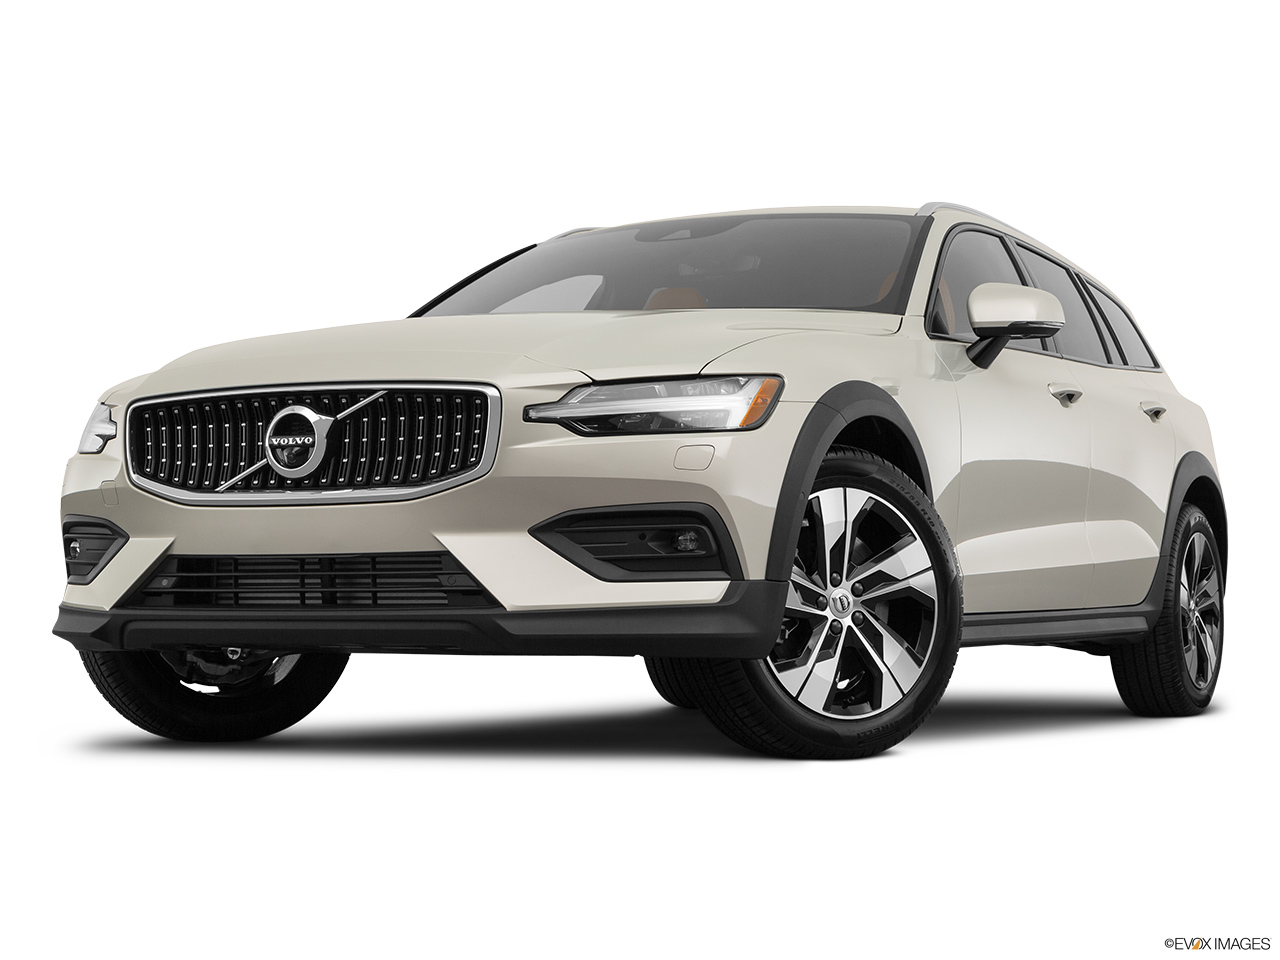 2020 Volvo V60 Cross Country T5 AWD Front angle view, low wide perspective.